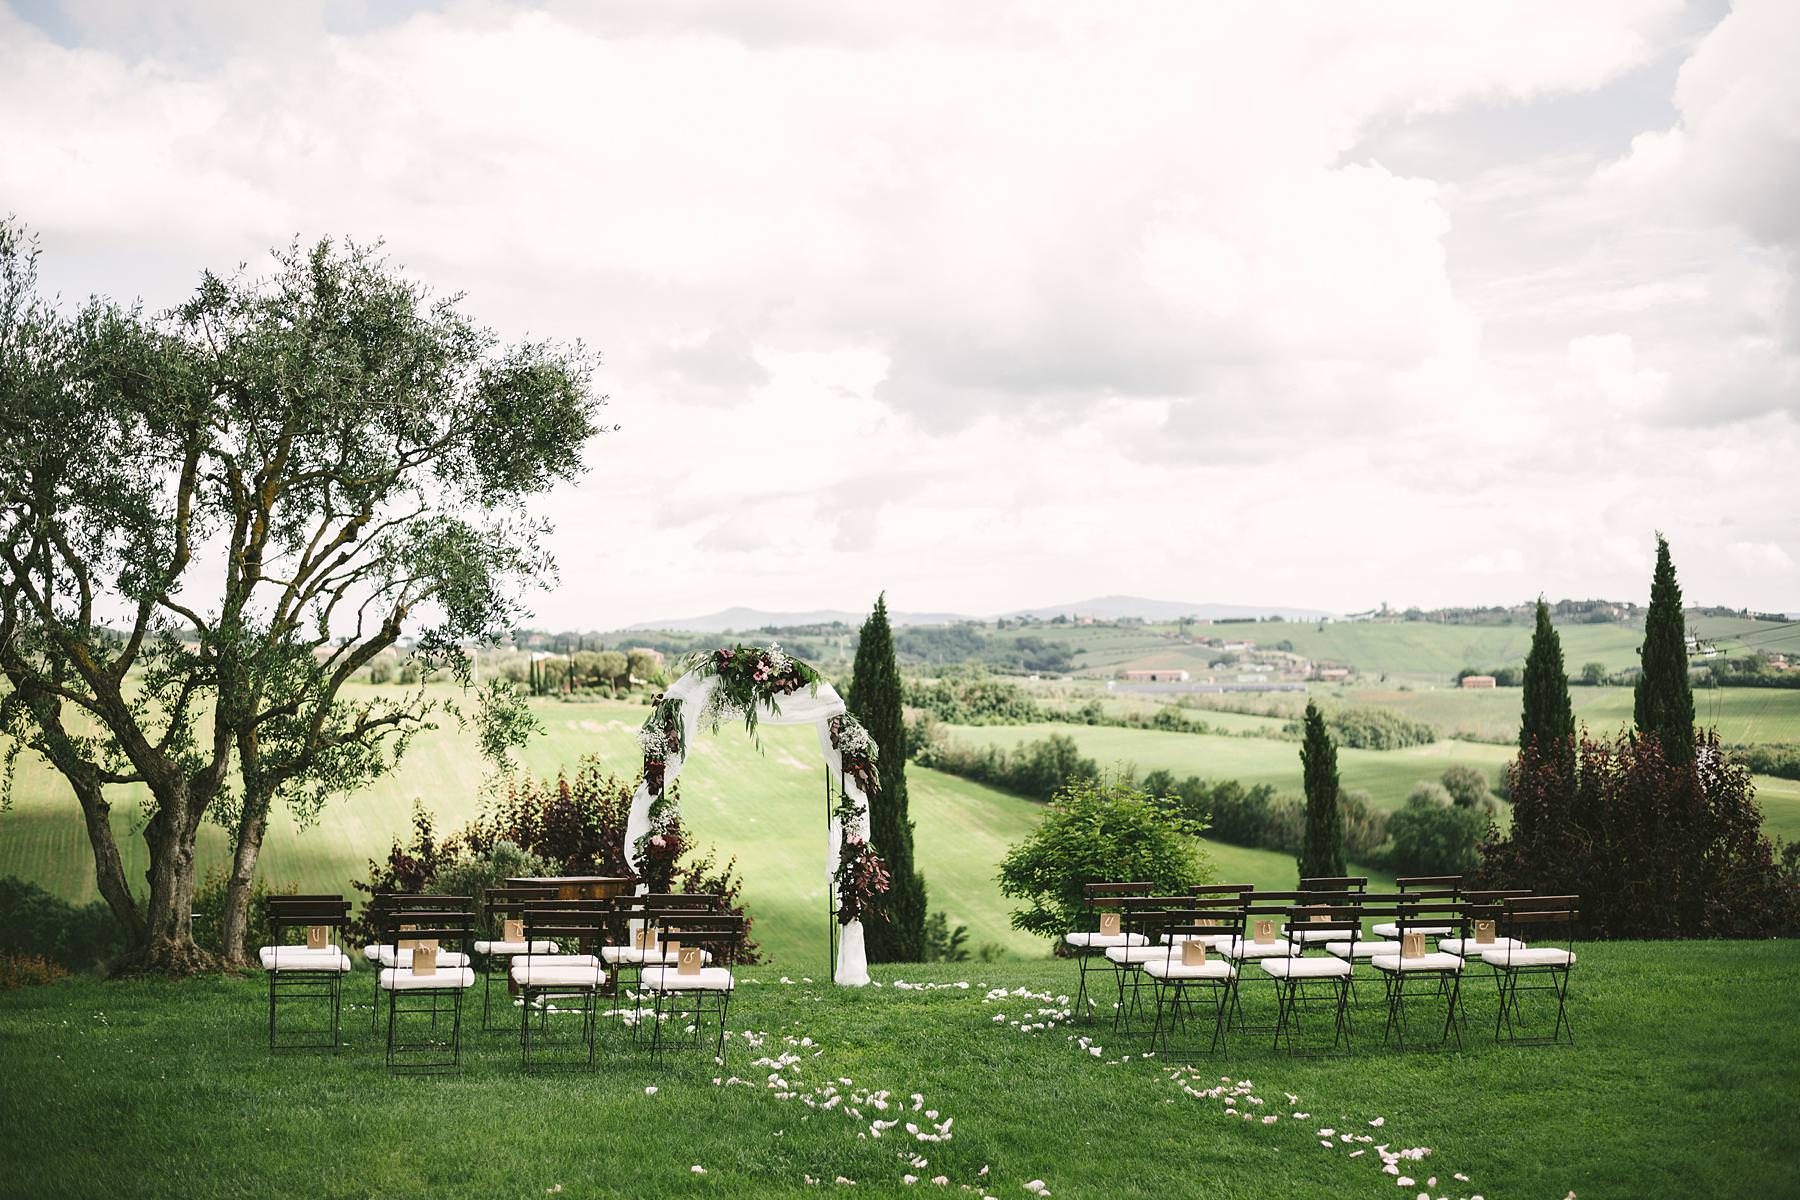 Intimate destination wedding in Umbria at Villa l'Antica Posta, elegance and fun in a nutshell. Incredible venue in Umbria for elegant destination wedding. Villa L'Antica Posta, located on the border between Tuscany and Umbria and overlooking the spectacular rolling hills of Montepulciano, covered in vineyards is a perfect venue for an unforgettable event